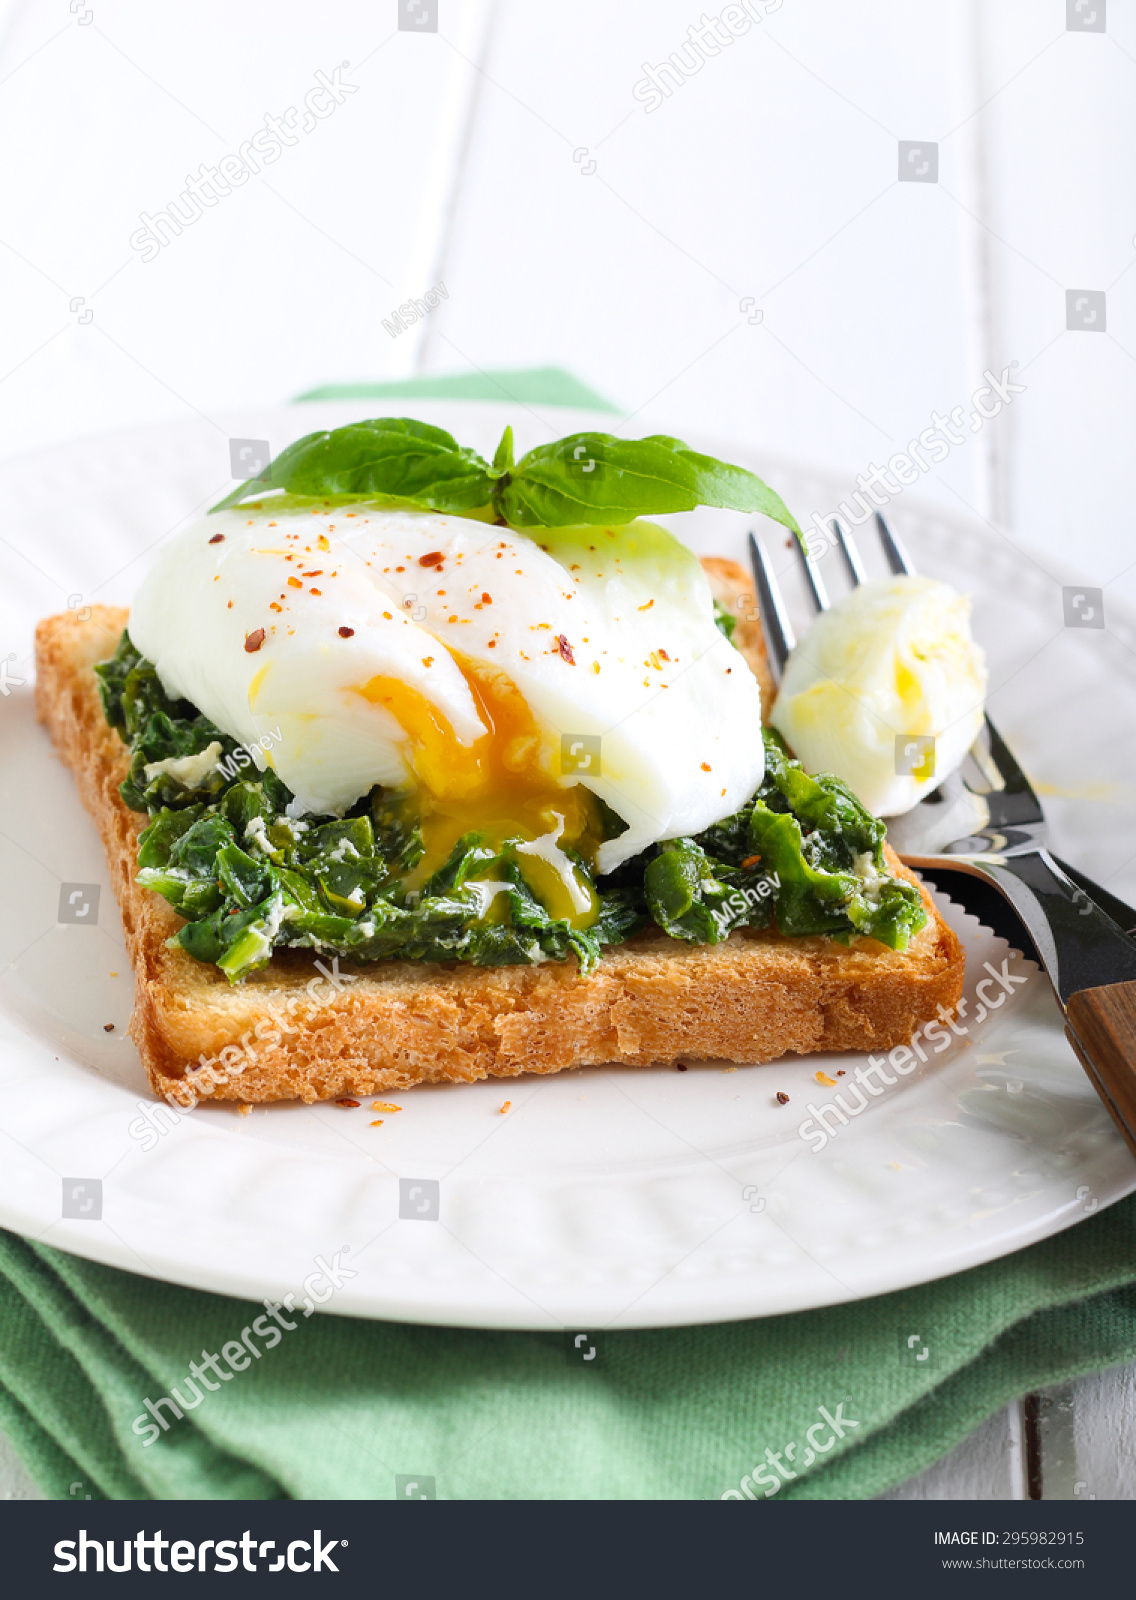 Creamy spinach and poached egg toast on plate